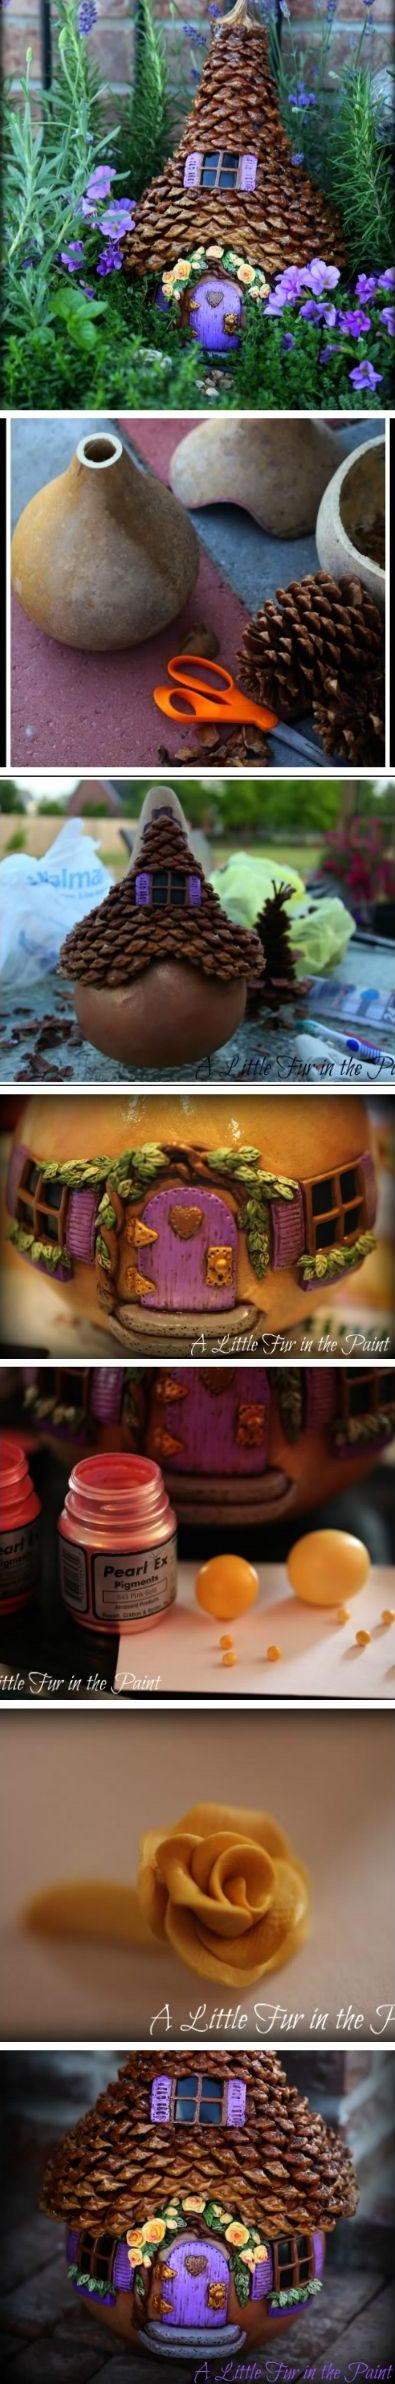 DIY Pinecone Decorated Fairy House